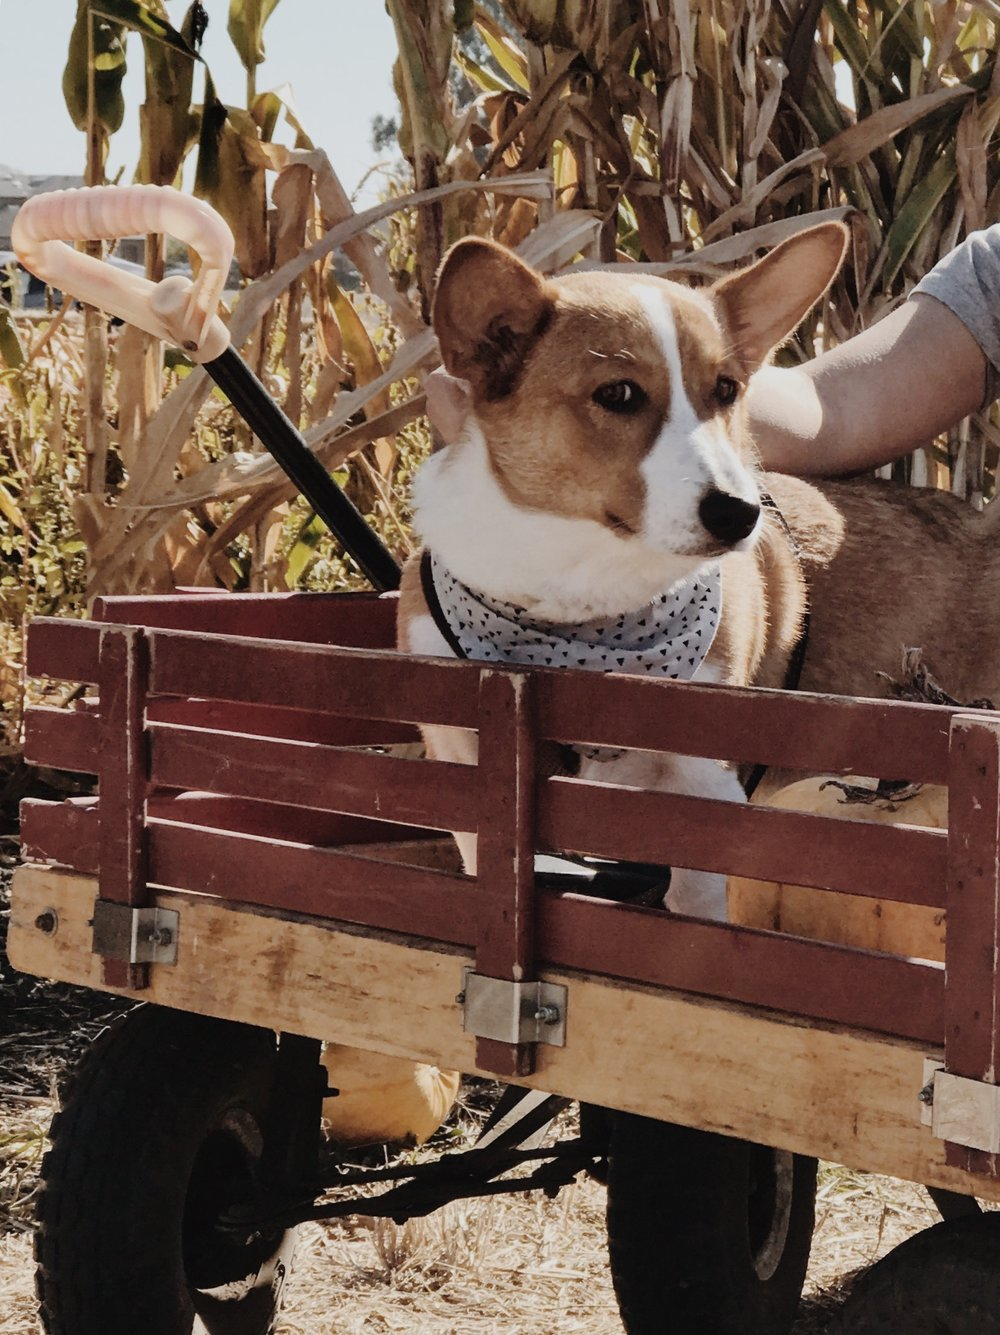 Pumpkin Patch Bay Area Farmer John's Dog Friendly Corgi Ollieforshort